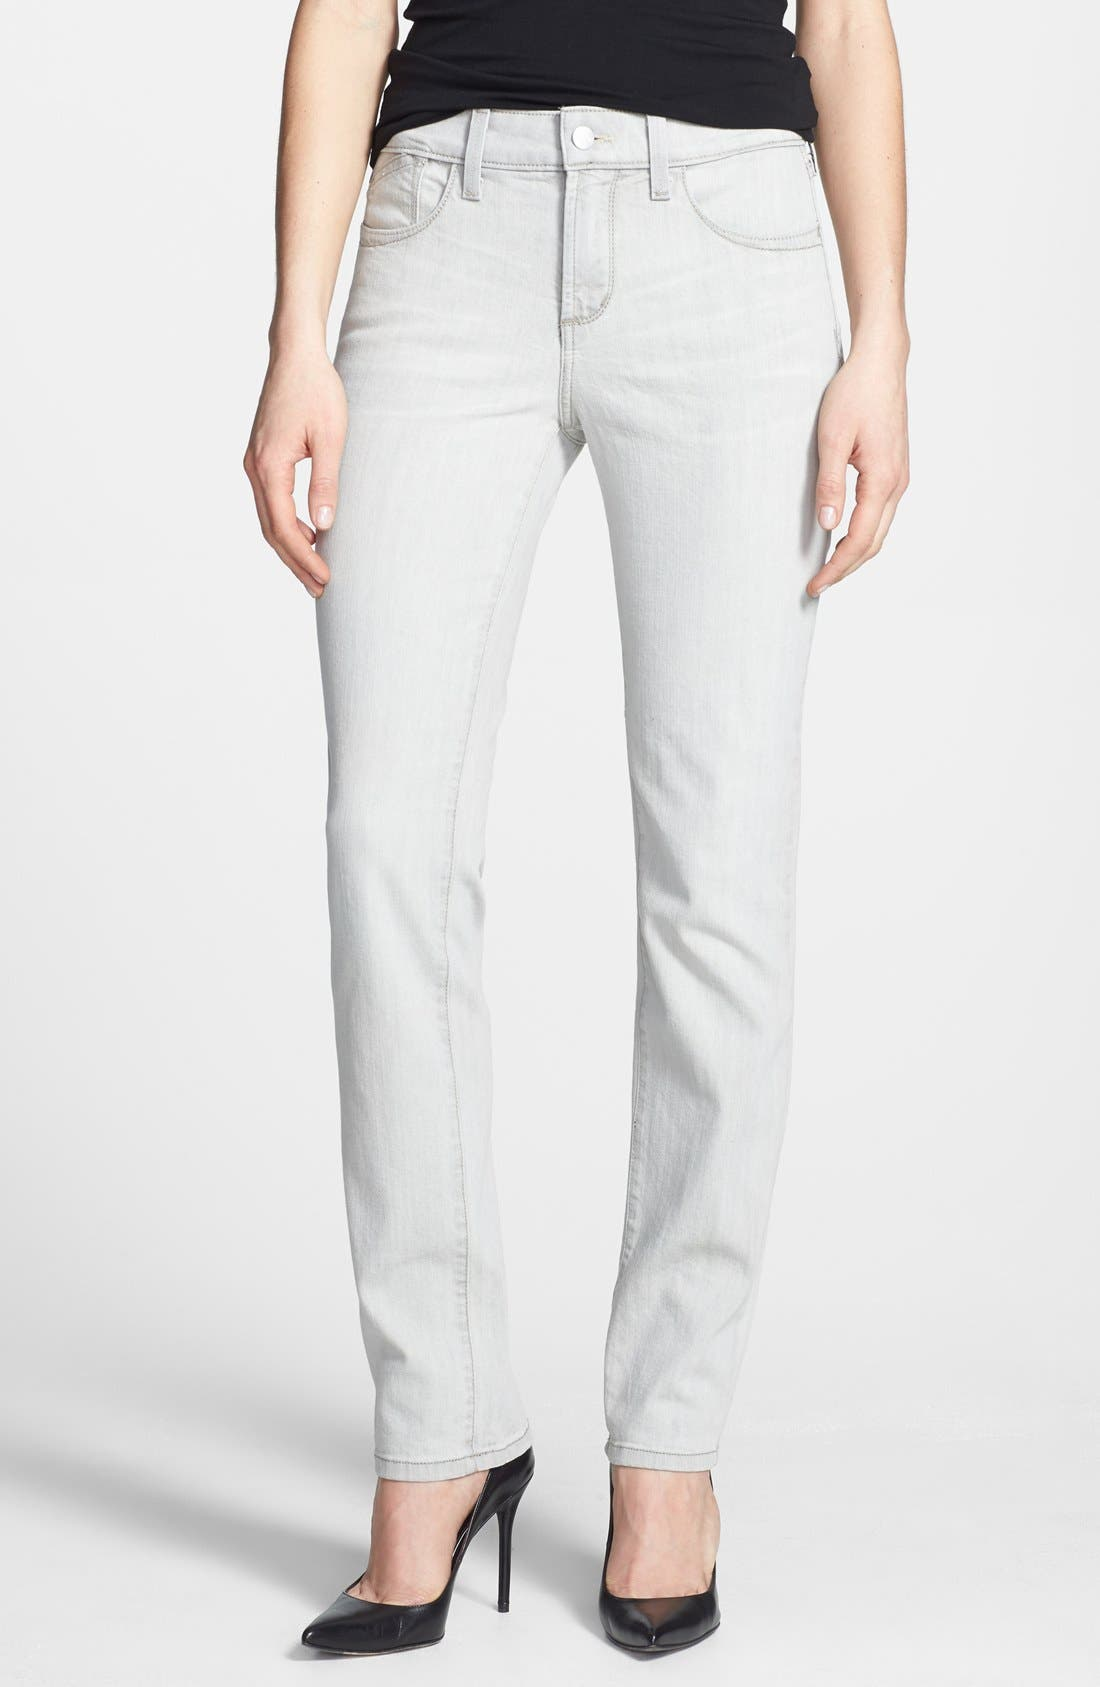 Main Image - NYDJ 'Clarissa' Fitted Stretch Ankle Skinny Jeans (Salt Spring)